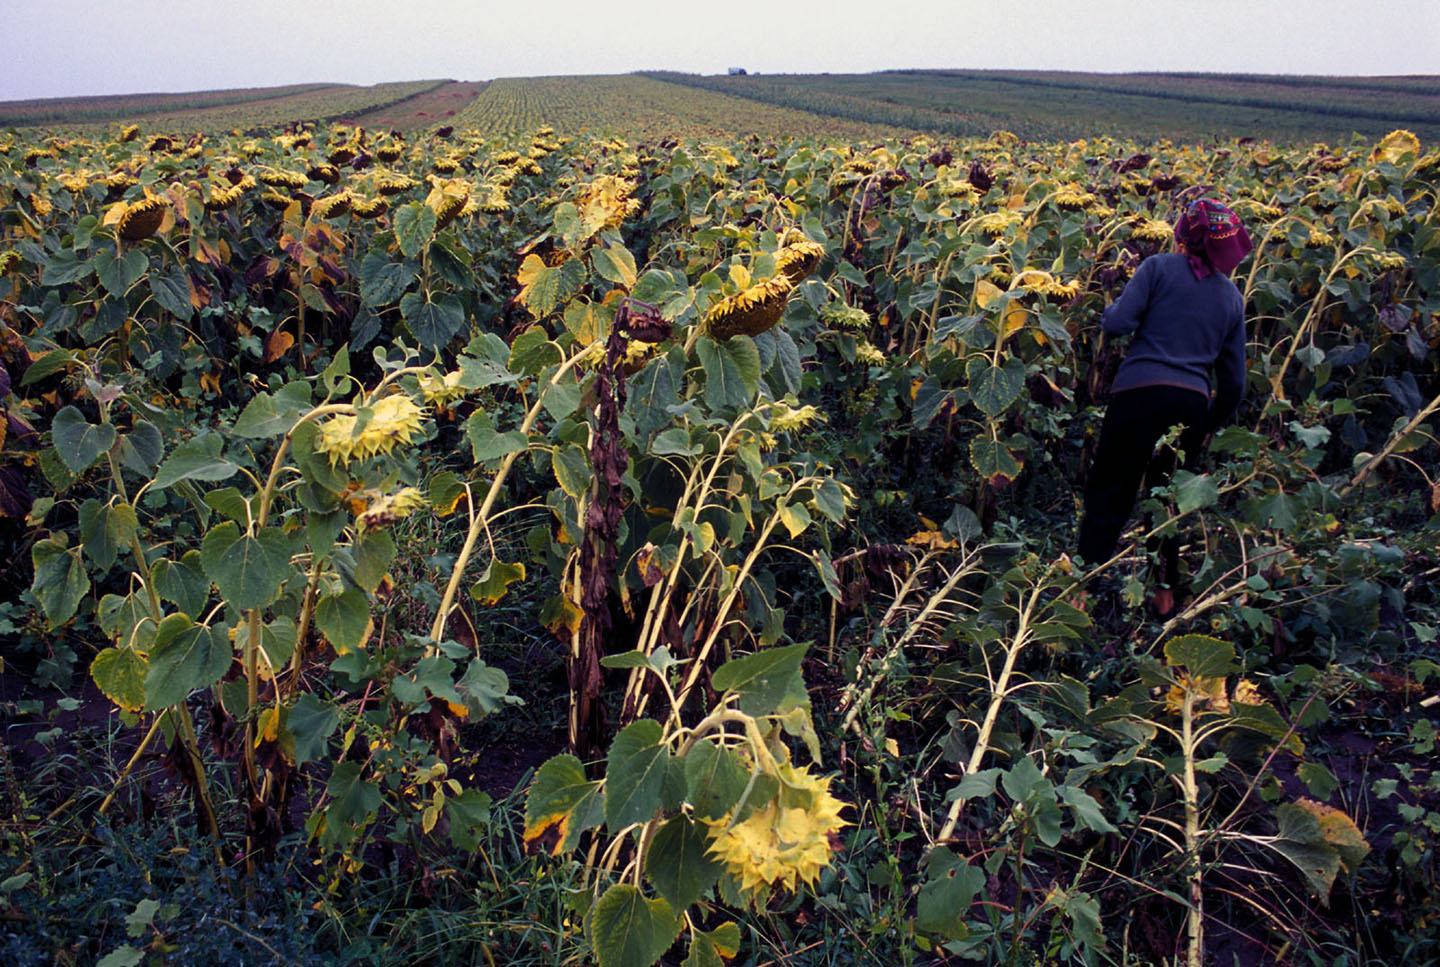 """The mother of a trafficked girl in a field of sunflowers. From """"The Price of Sex"""" reportage."""